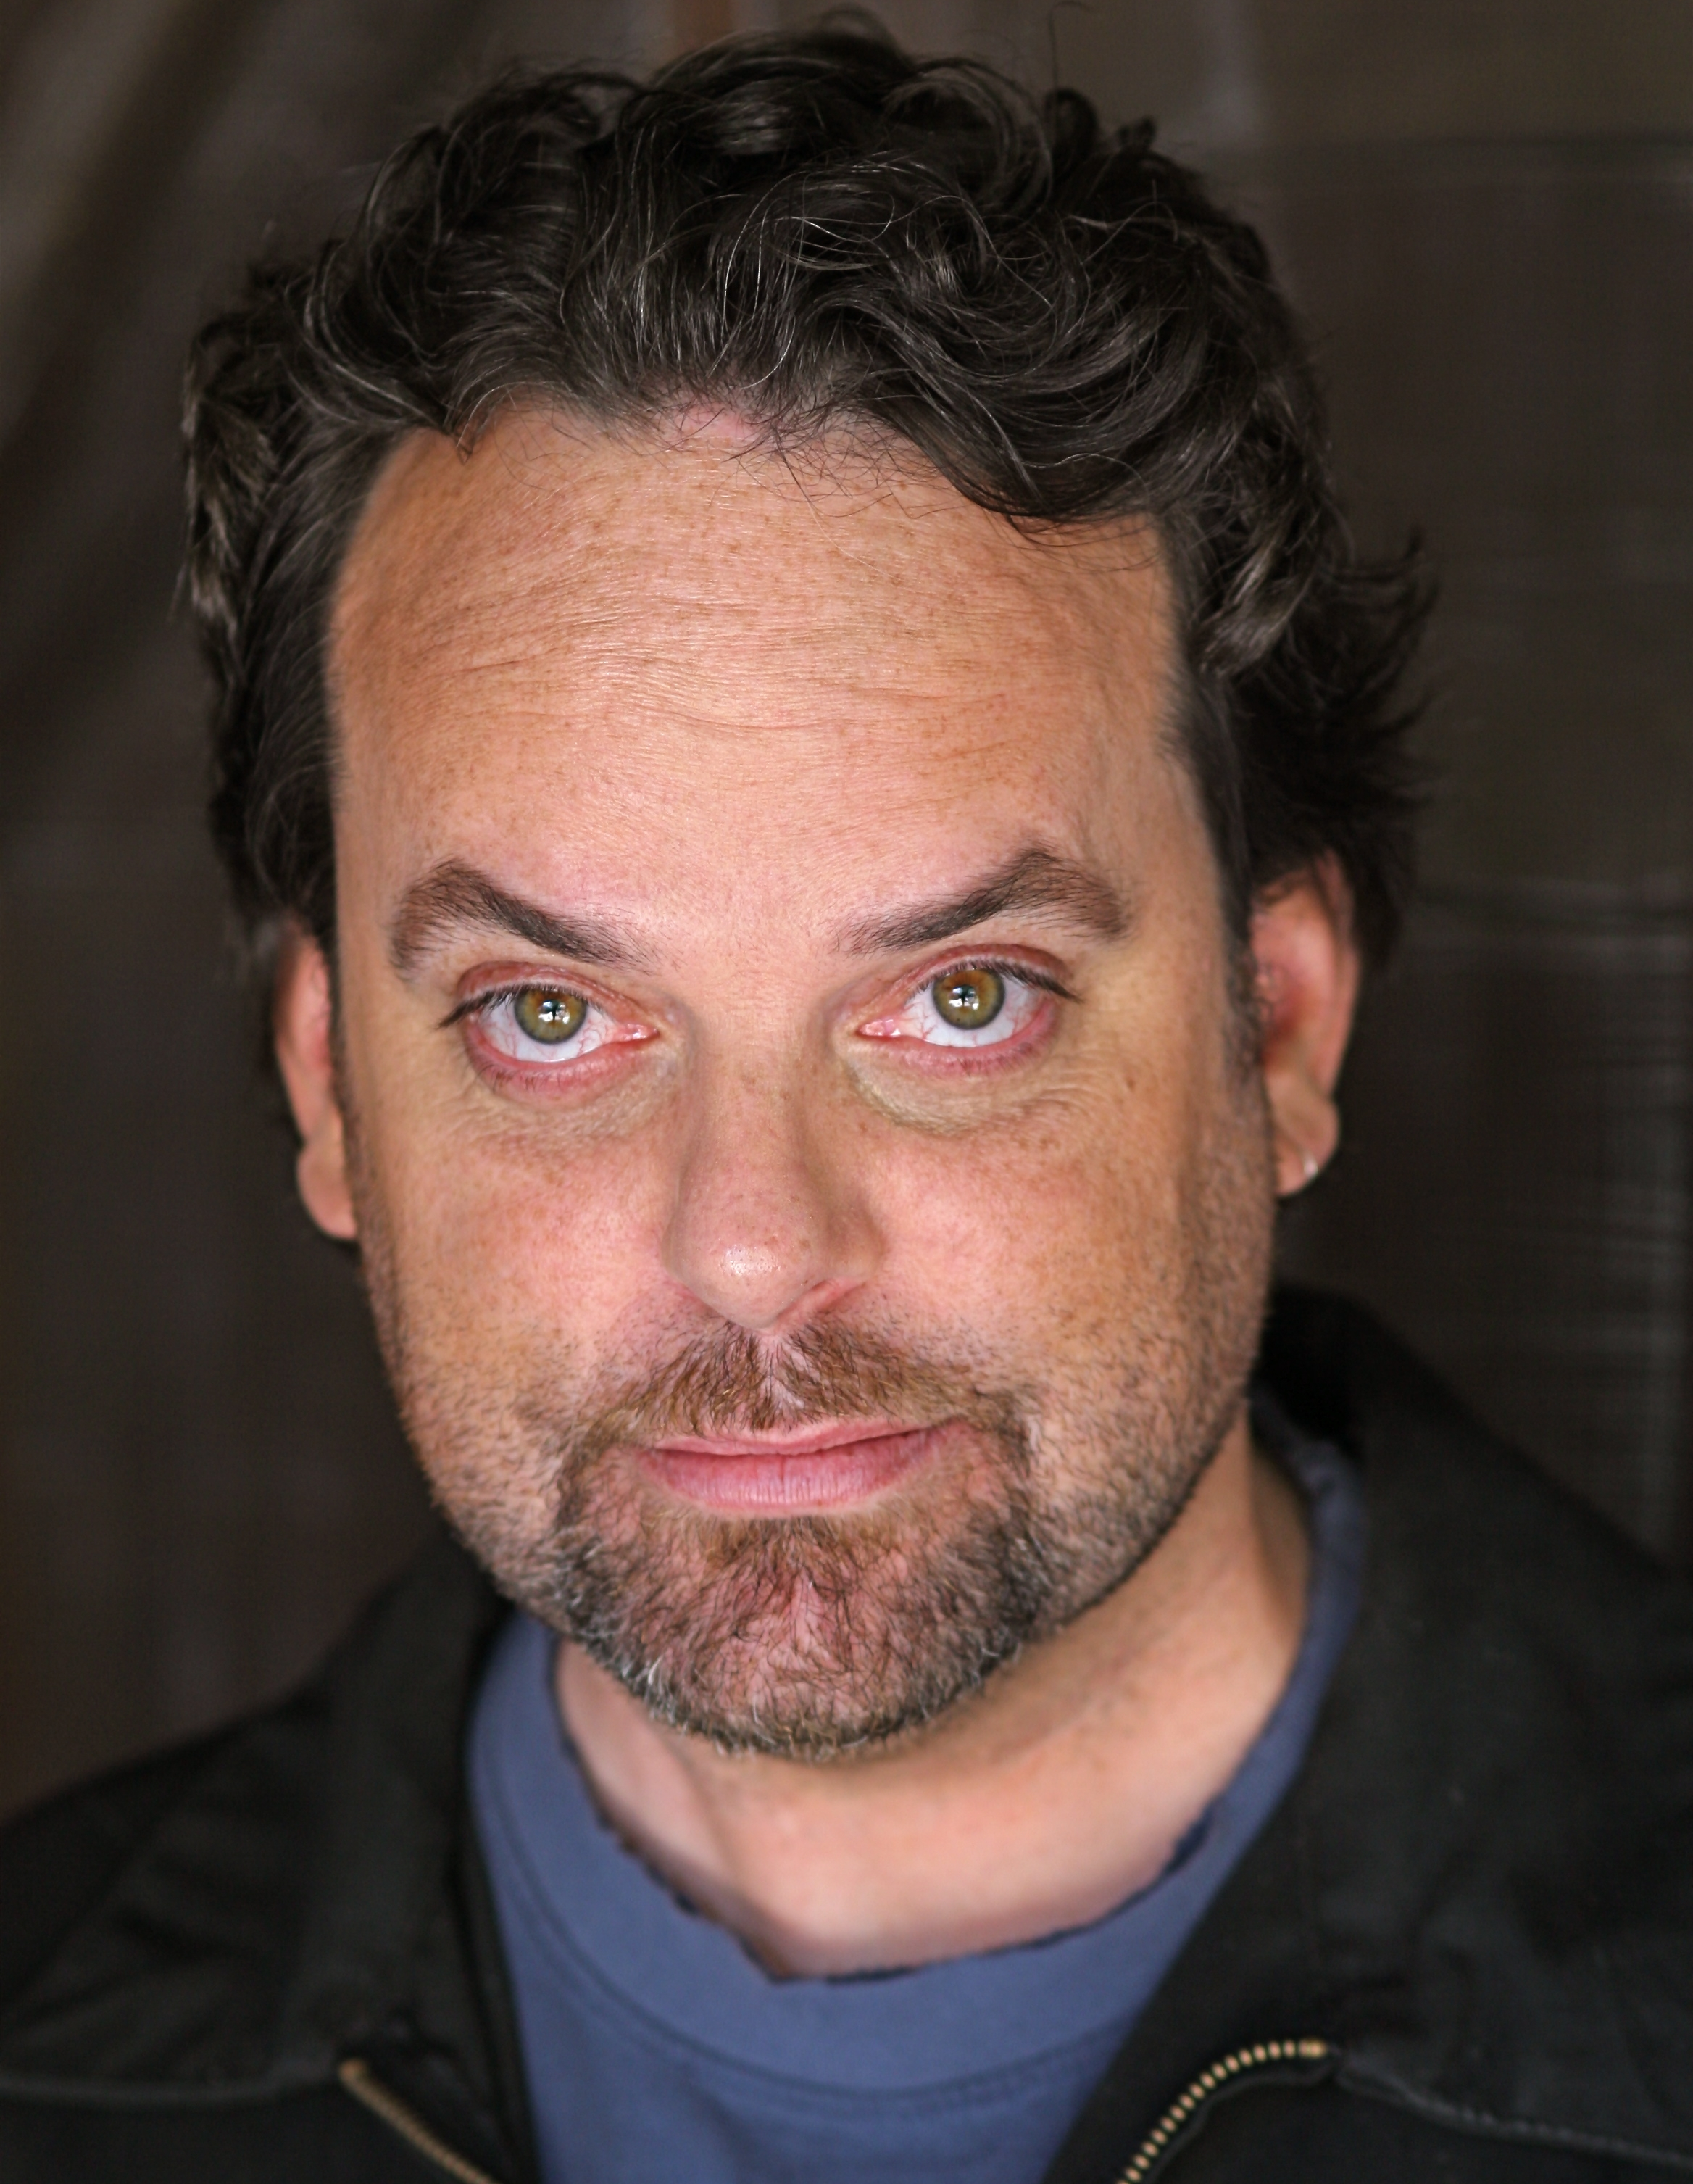 ERIC G. JOHNSON - Producer   ERIC has been a writer, director and producer in the Los Angeles area for over two decades. Before coming on as a producer for  Bastards y Diablos , Eric wrote, directed and produced the feature film  Tweek Cit , which is currently being distributed around the world by Maverick Entertainment. Other producing and/or writing credits include  Pretty Smart  for MTV,  All Access for VH1, the pilot  Craig Ferguson's Really Big Game Show  for CBS and screenplays for Film Roman and T-Bone Films.Eric is also a producer on the feature film  Fly and the Wall and is currently directing and co-producing Andrew Perez's Ovation-Recommended solo play  The Second Coming of Klaus Kinski .Other recent directing-producing efforts for the stage include the world premiere of Sharon Lintz's  Starfucking  at the 2015 Hollywood Fringe Festival (Encore Producer's Award) and the West Coast premiere of Andrea Fleck Clardy's  Hijab  for the 2016 Hollywood Short+Sweet Festival. Additionally, Eric has directed and/or acted in a host of films, commercials, industrials, sketch shows and plays and has worked for years as a writer and researcher at the television show,  Jeopardy!